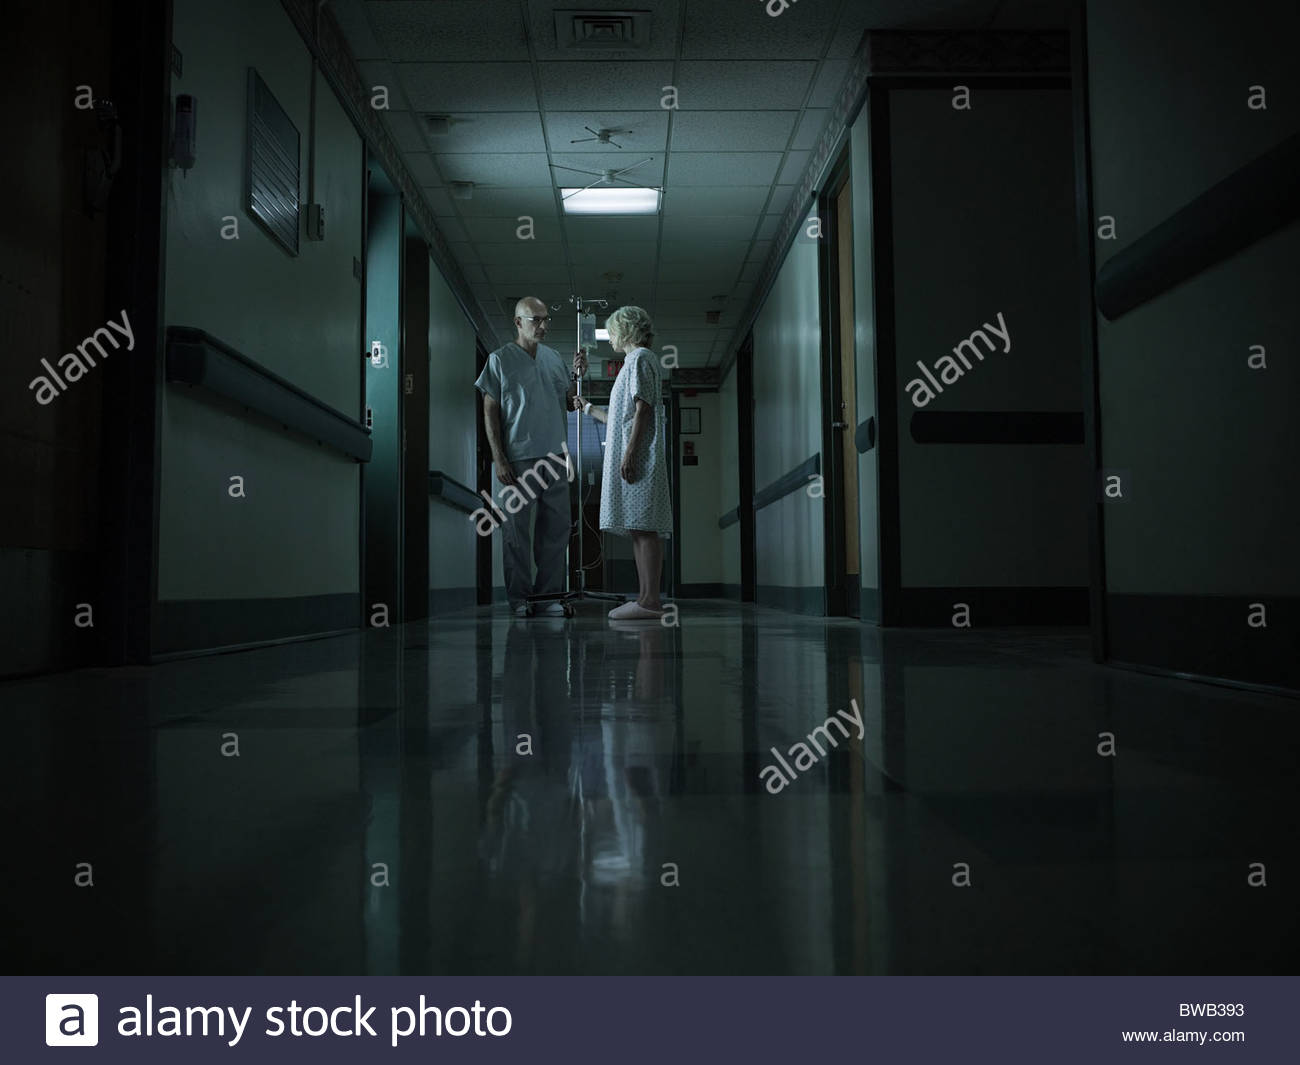 Female patient with intravenous drip - Stock Image